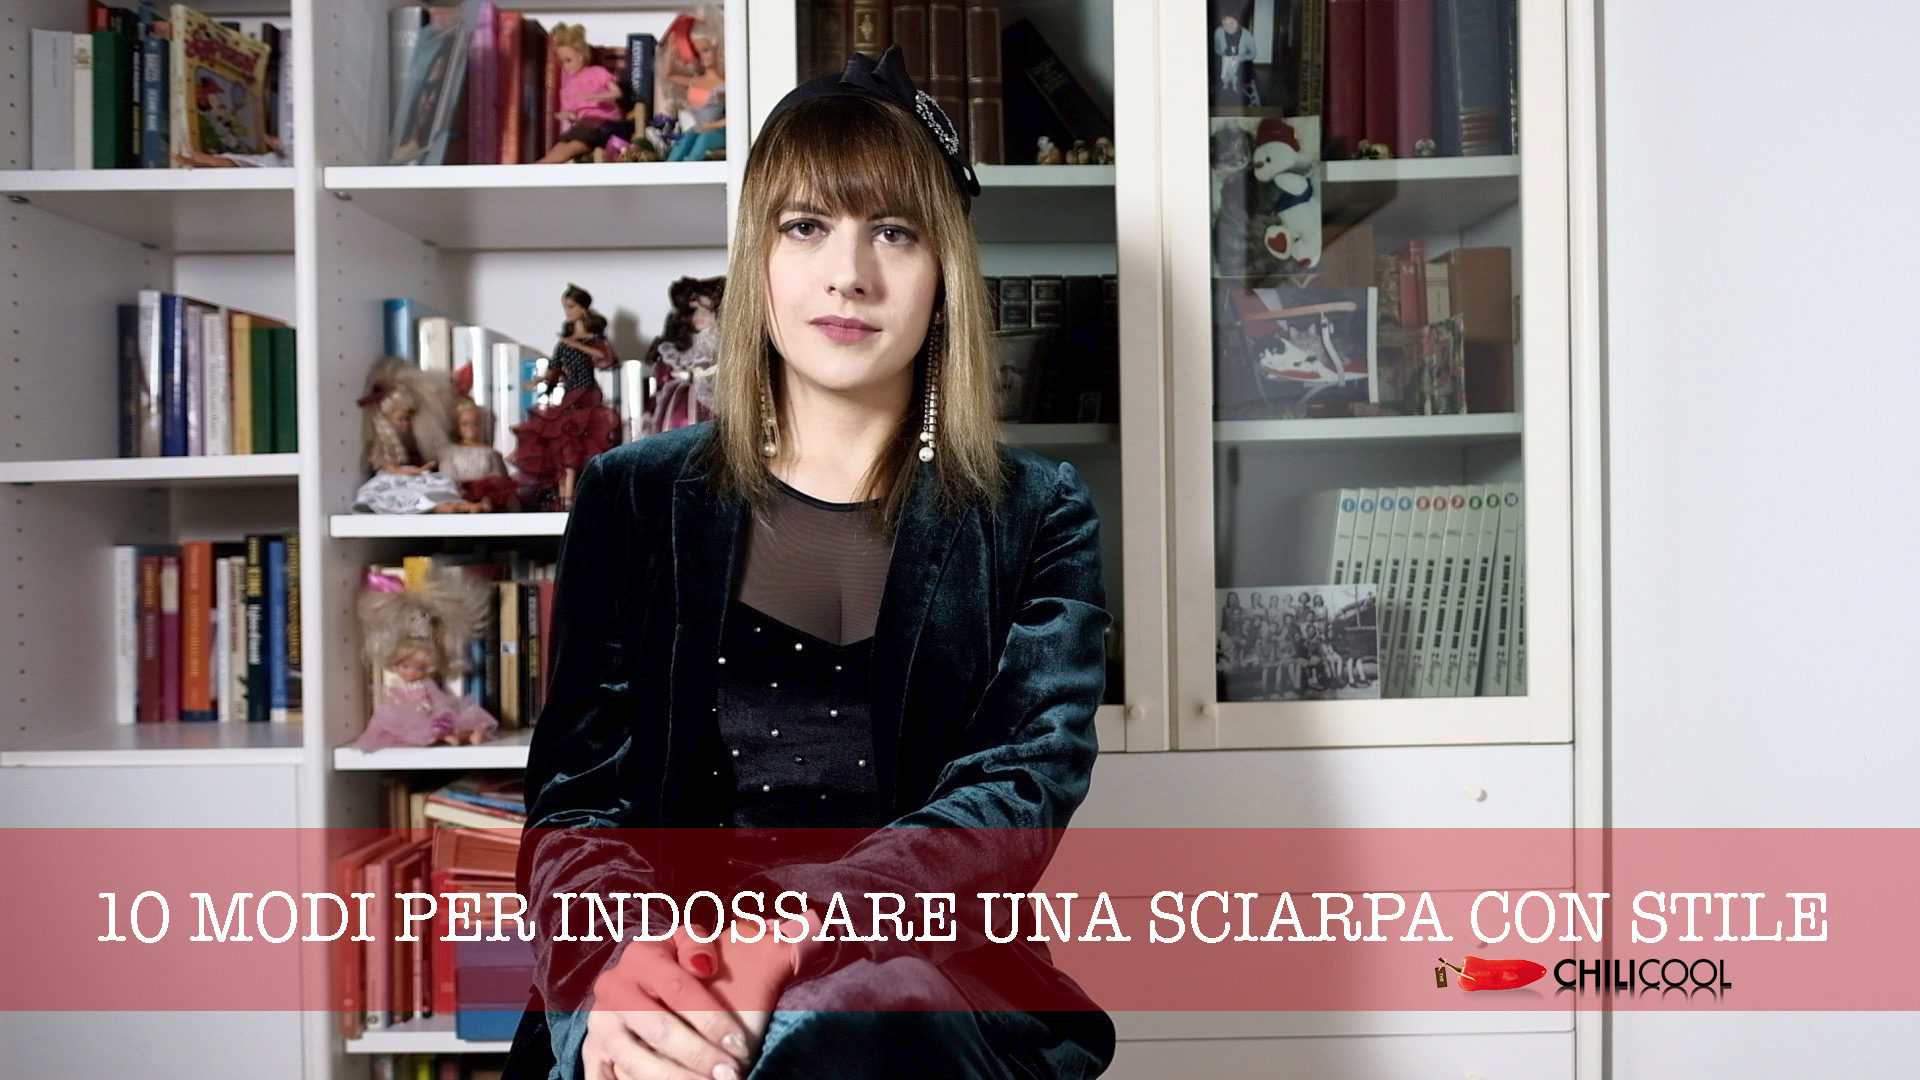 #ChiliFashion: dieci modi per indossare la sciarpa con stile e comodità, alessia milanese, thechilicool, fashion blog, fashion blogger, chili guide